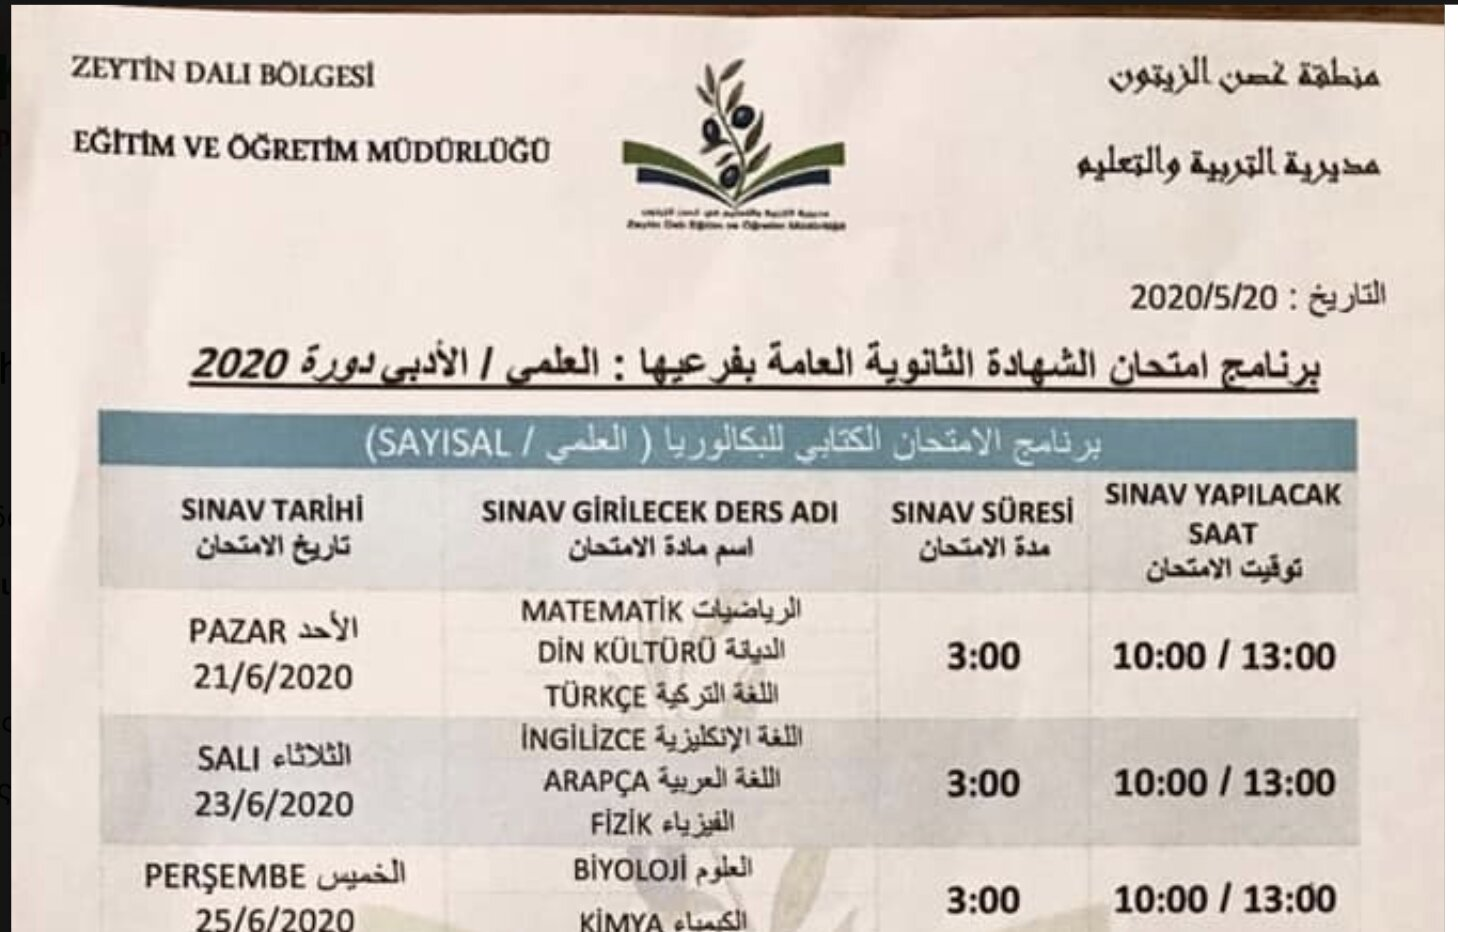 Turkey officially deletes the Kurdish language and imposes its language in the schools of Afrin.